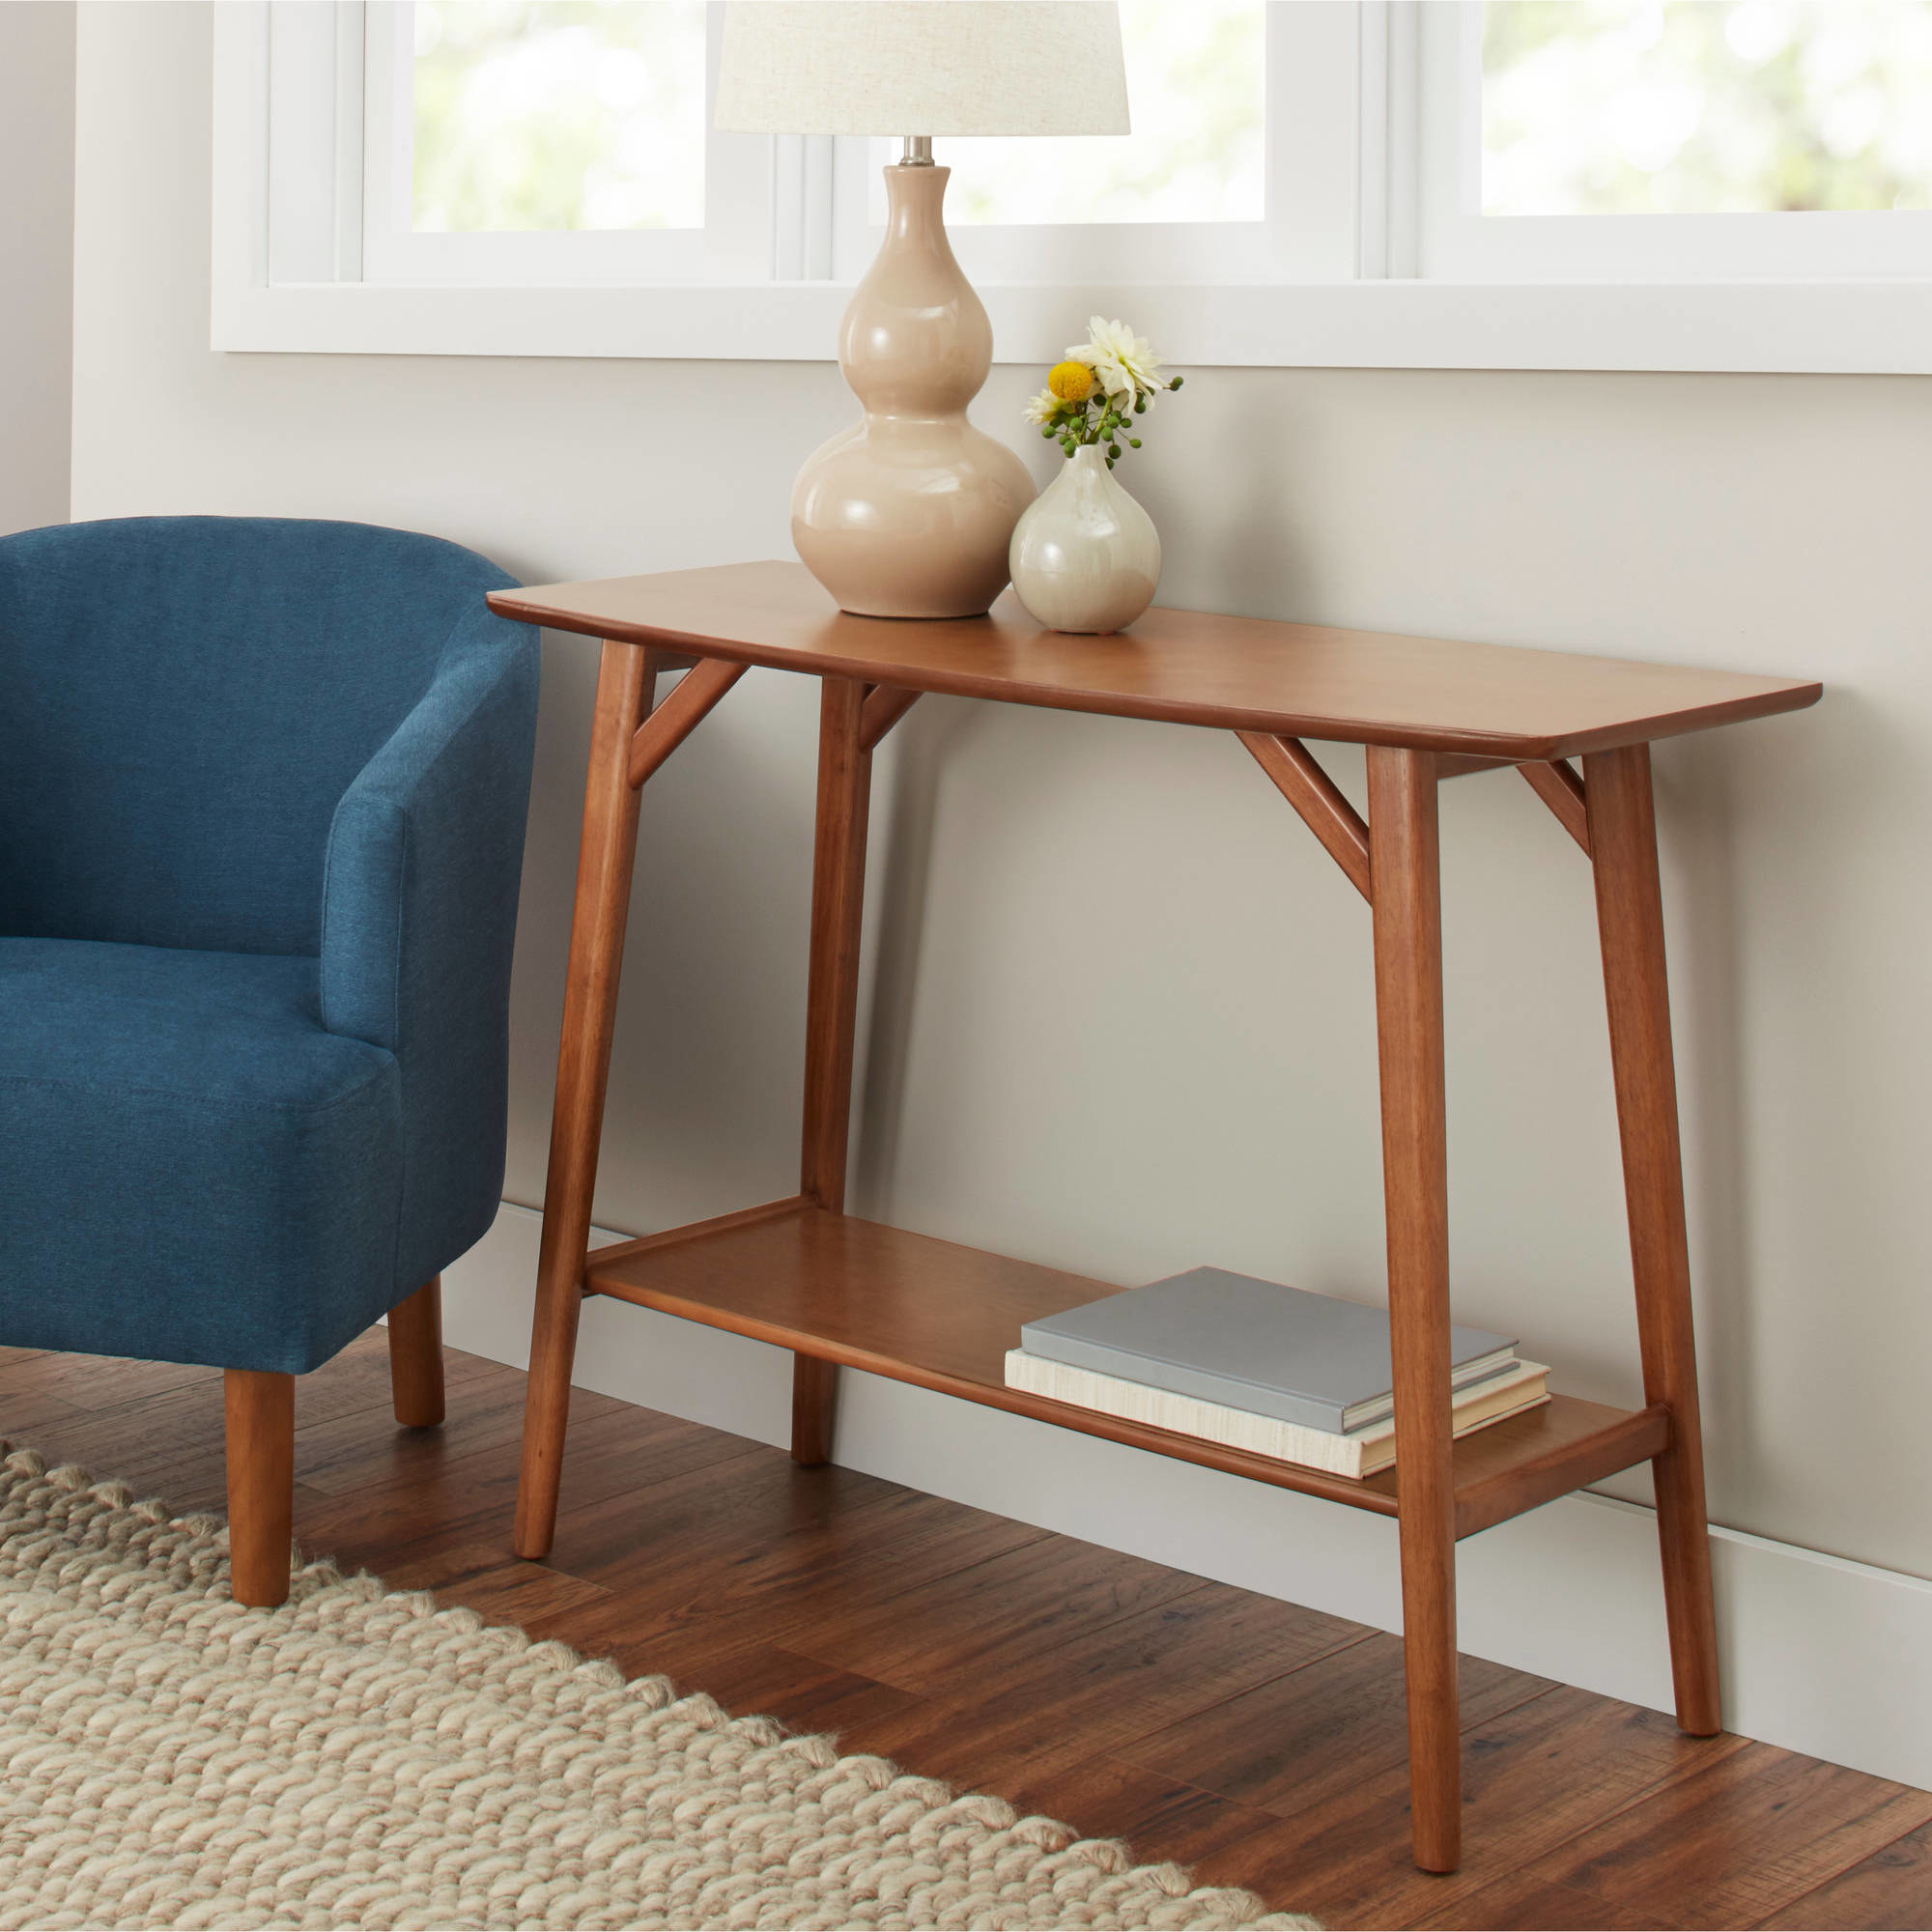 The tan console table in a living room